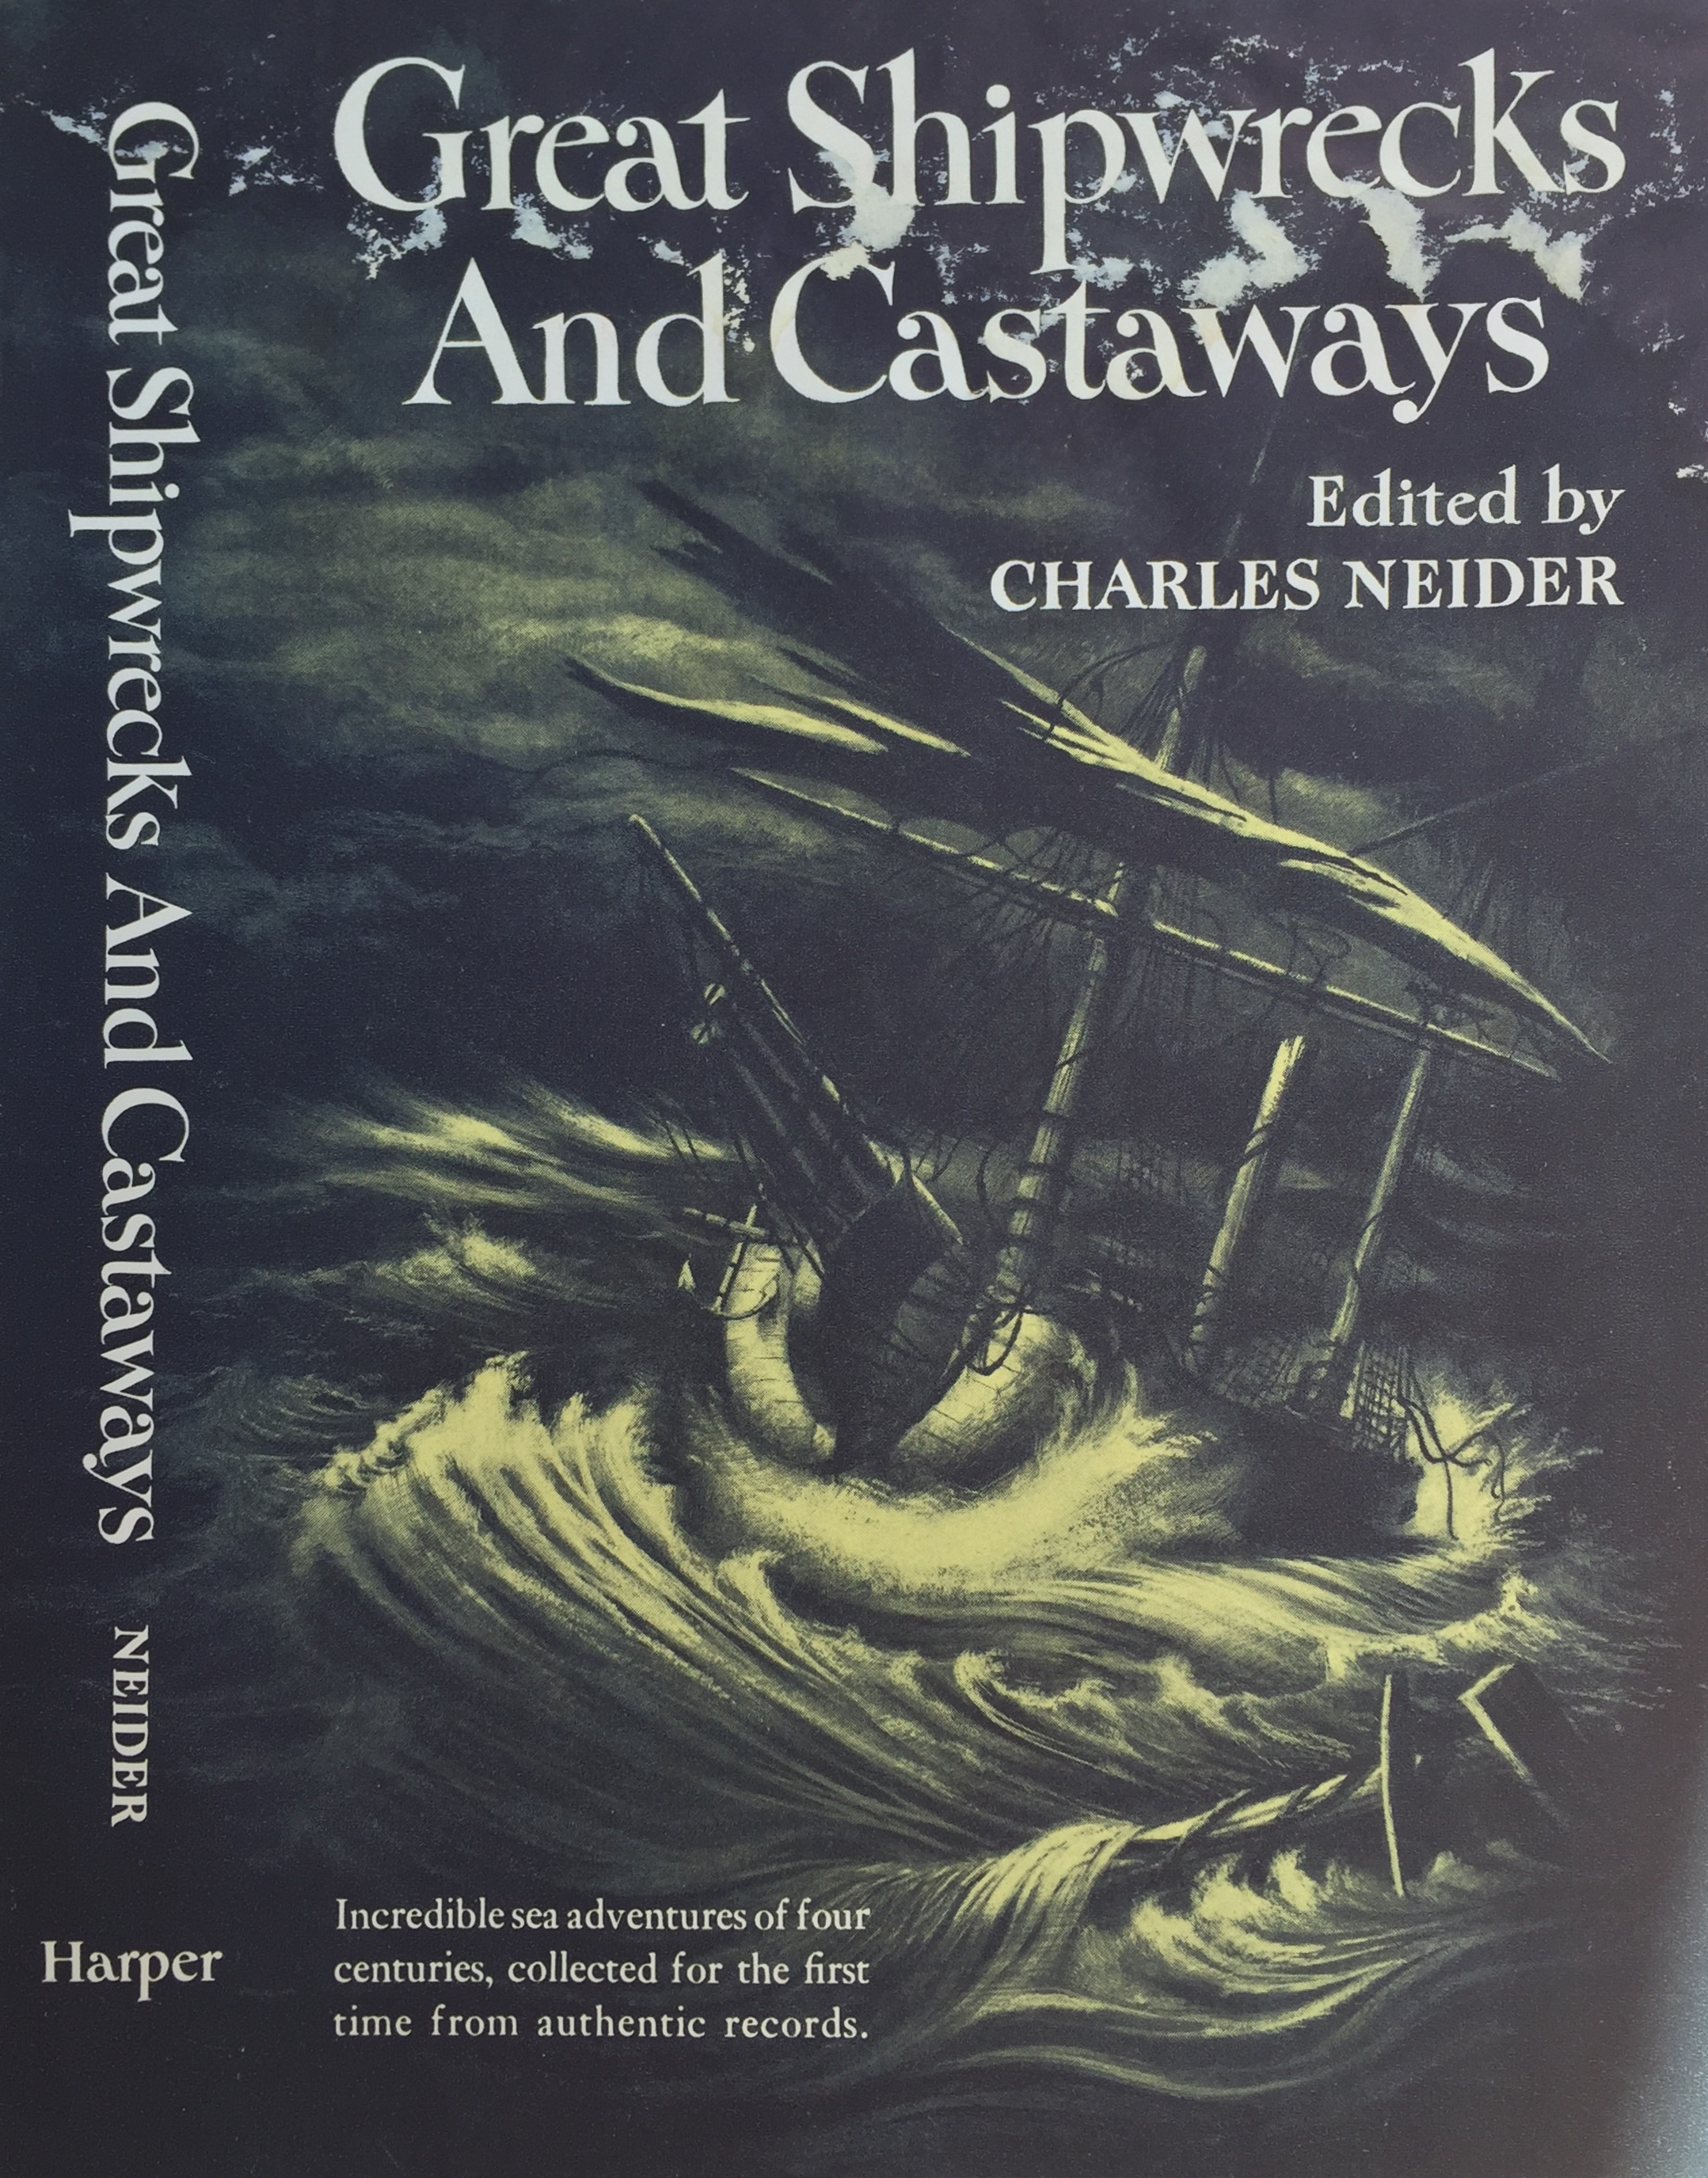 Great Shipwrecks and Castaways 0.jpg